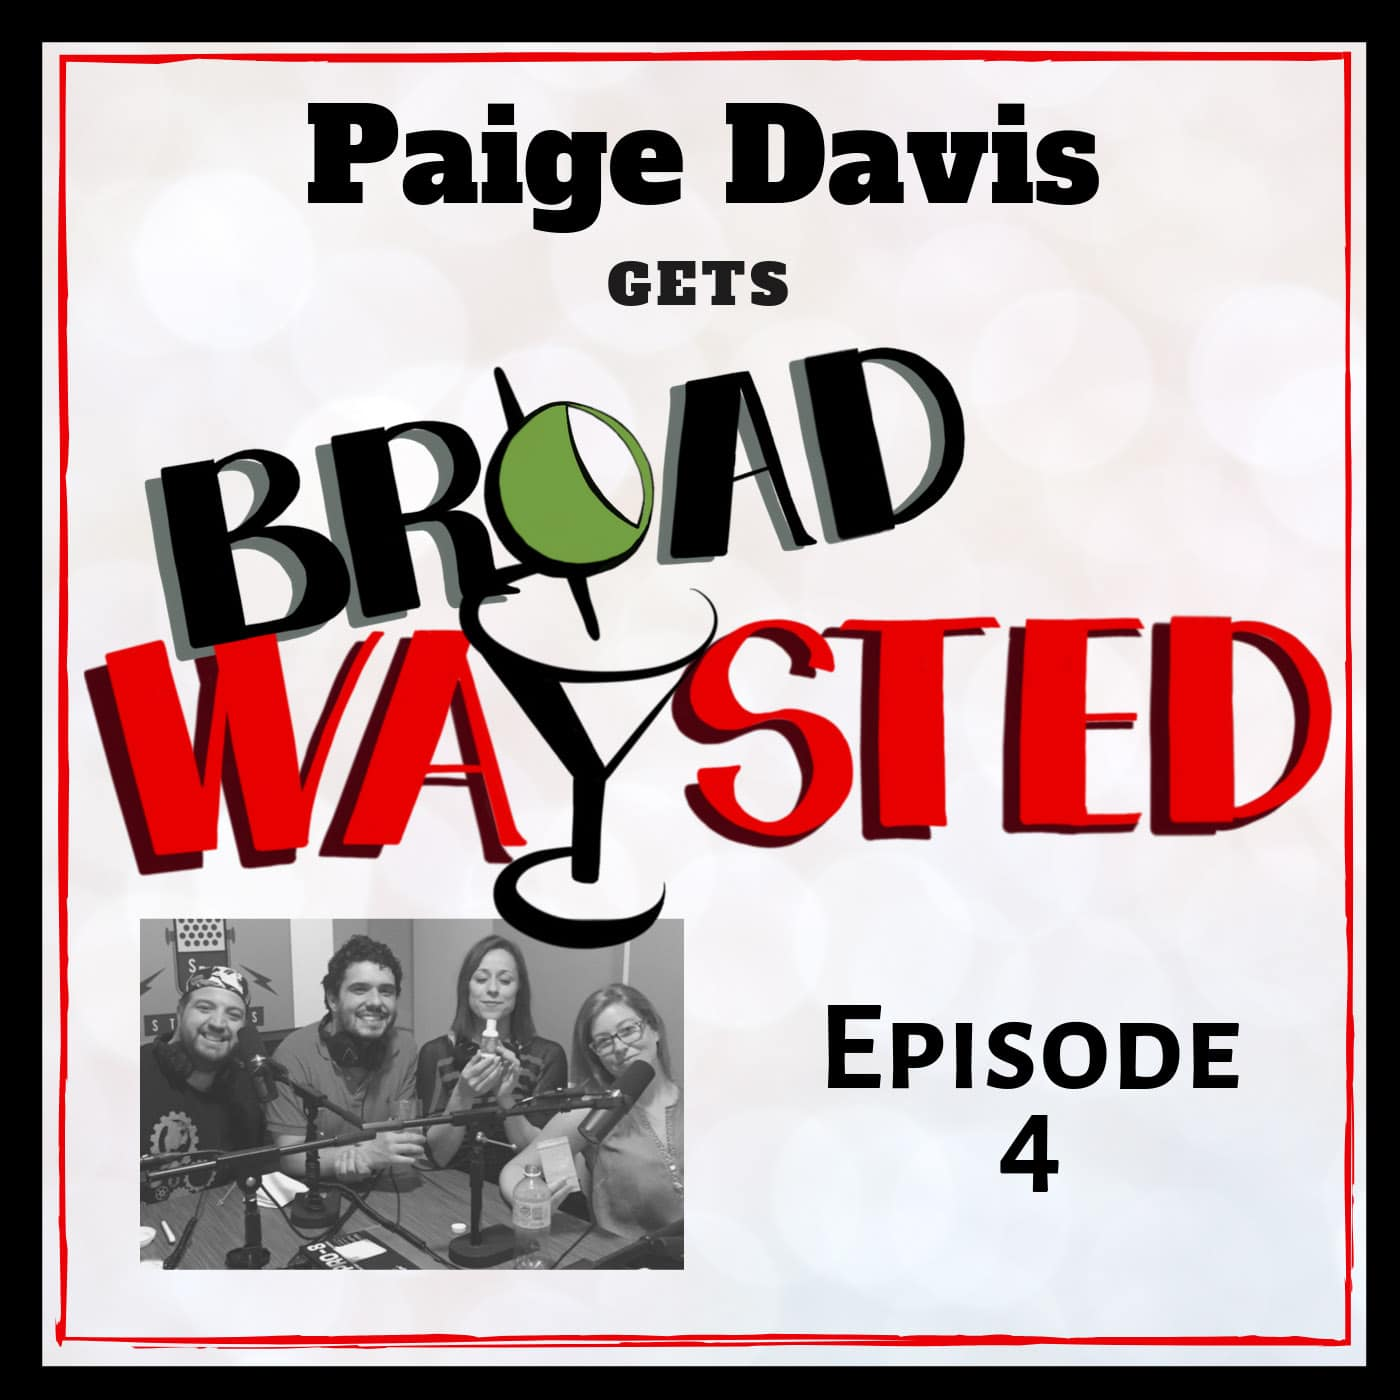 Broadwaysted Ep 4 Paige Davis